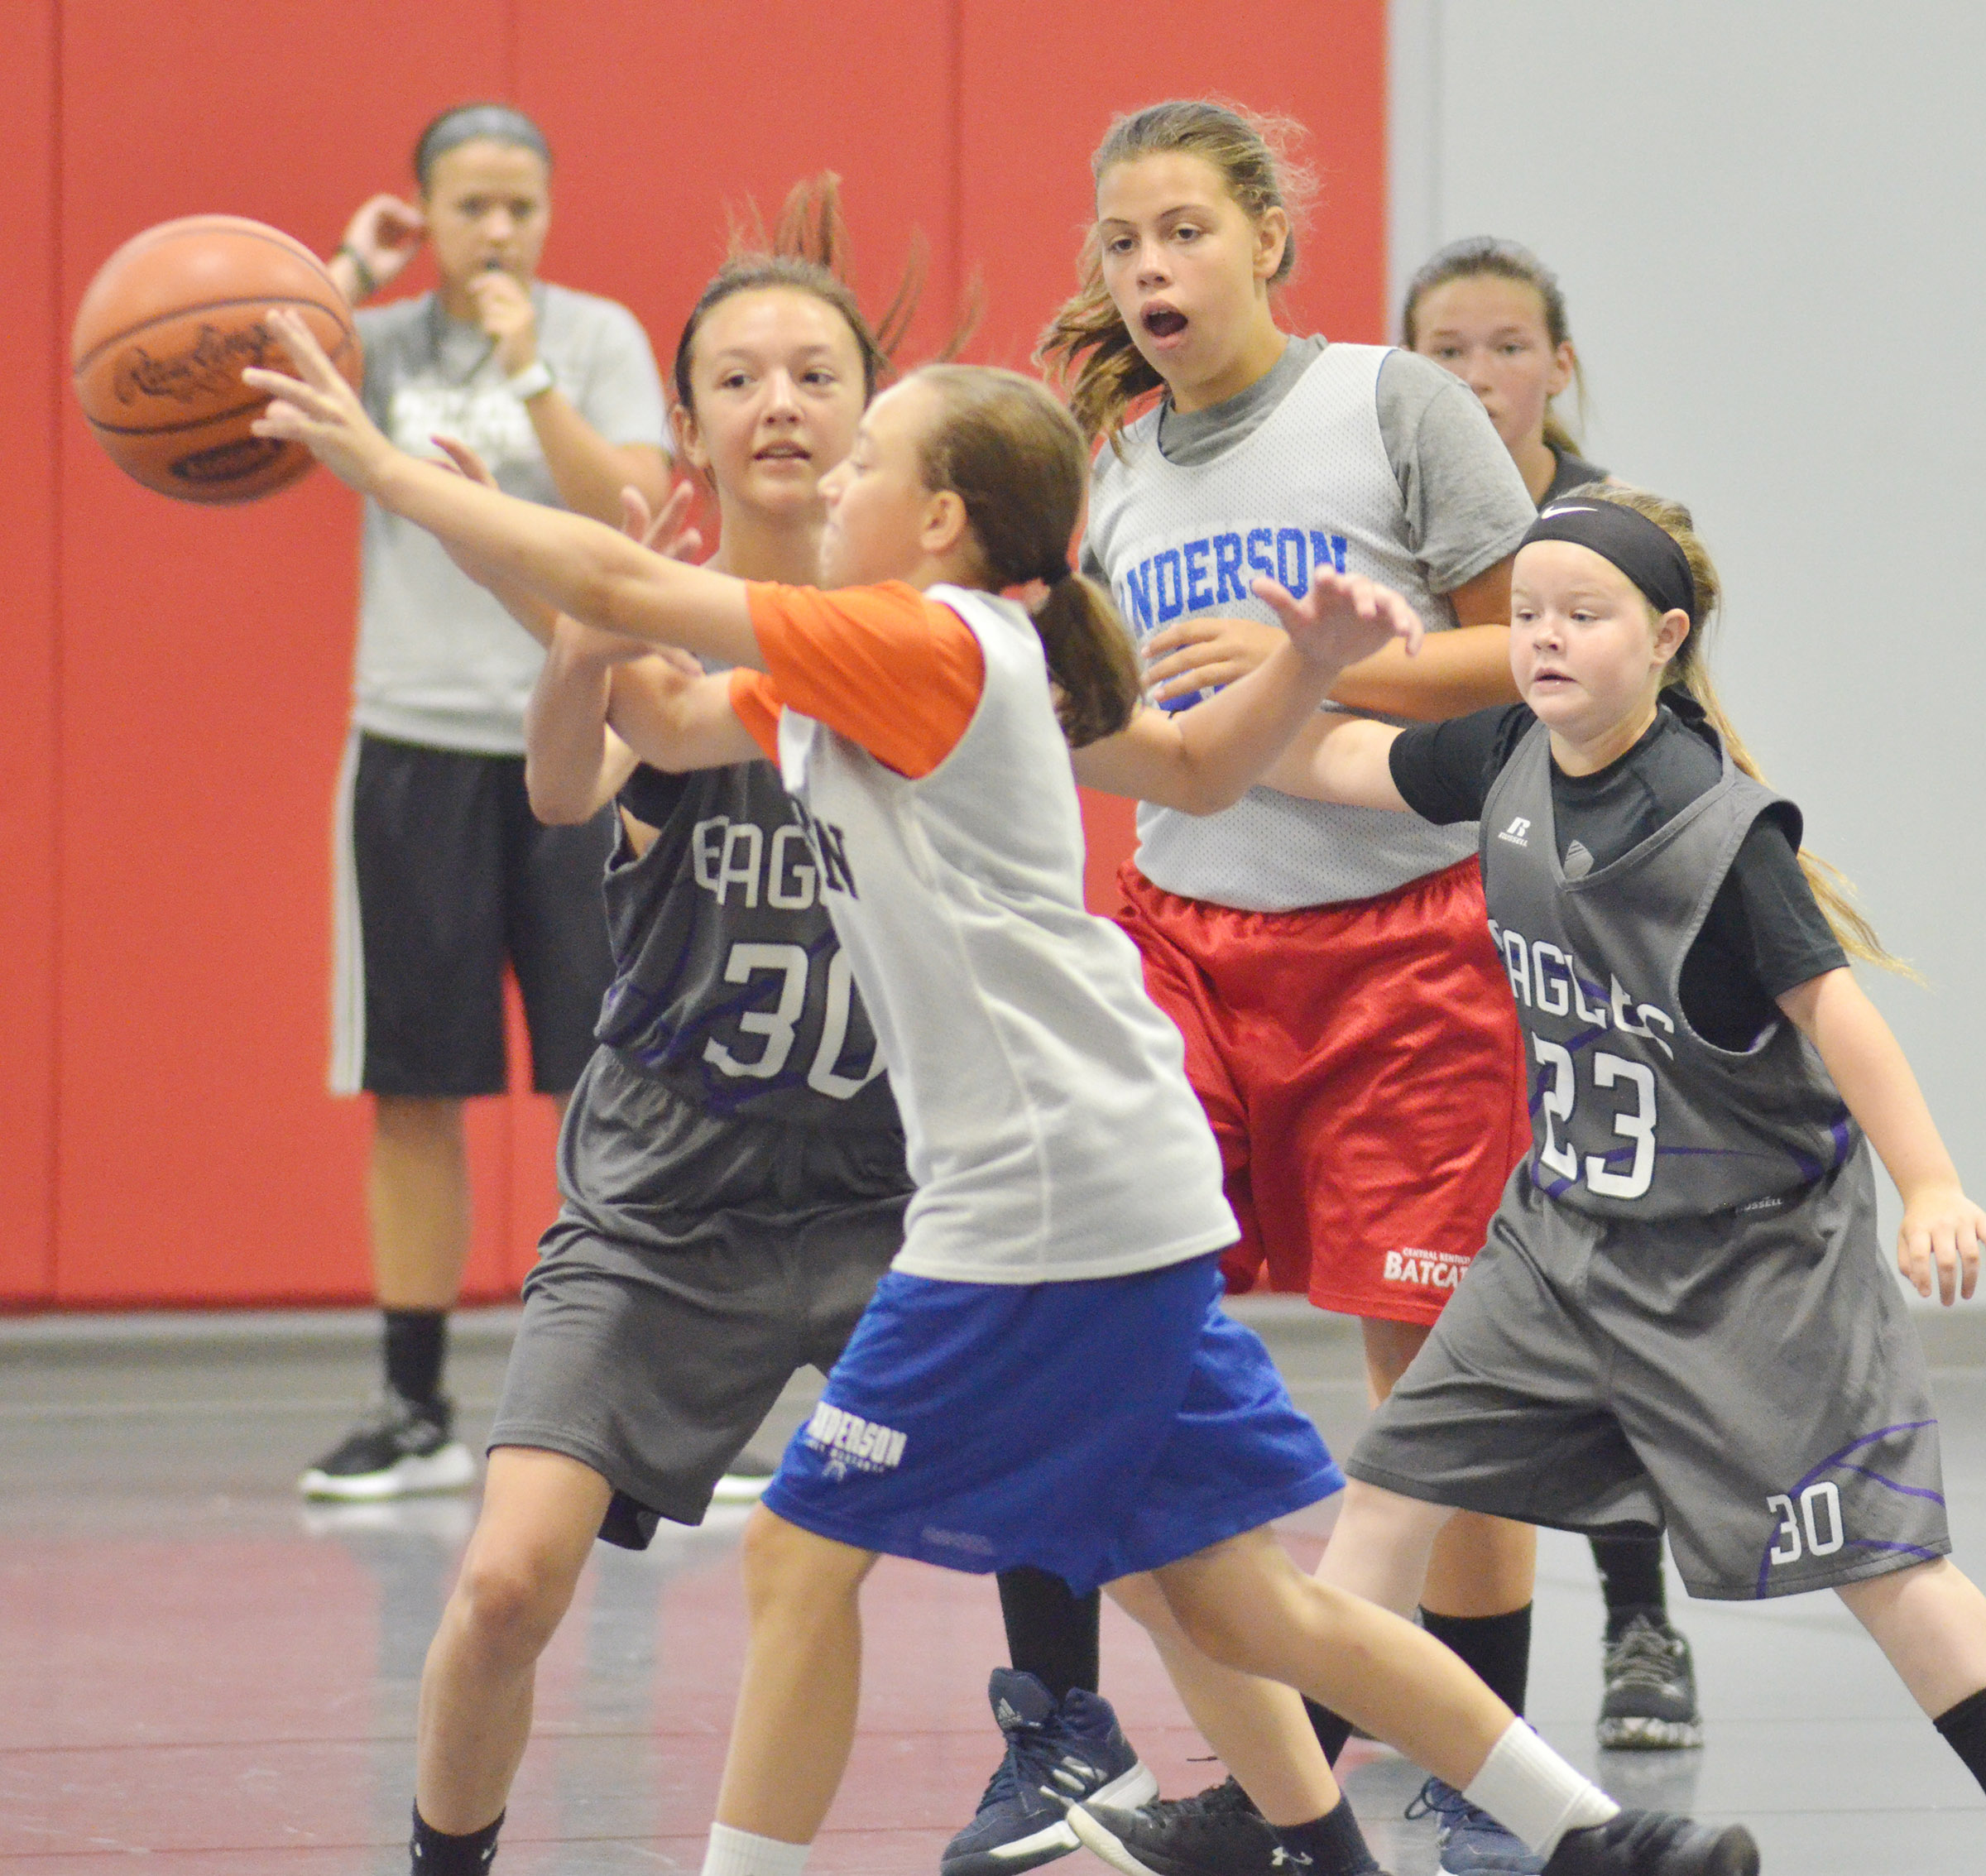 CMS seventh-grader Bri Hayes, at left, and fifth-grader Miley Hash play defense.